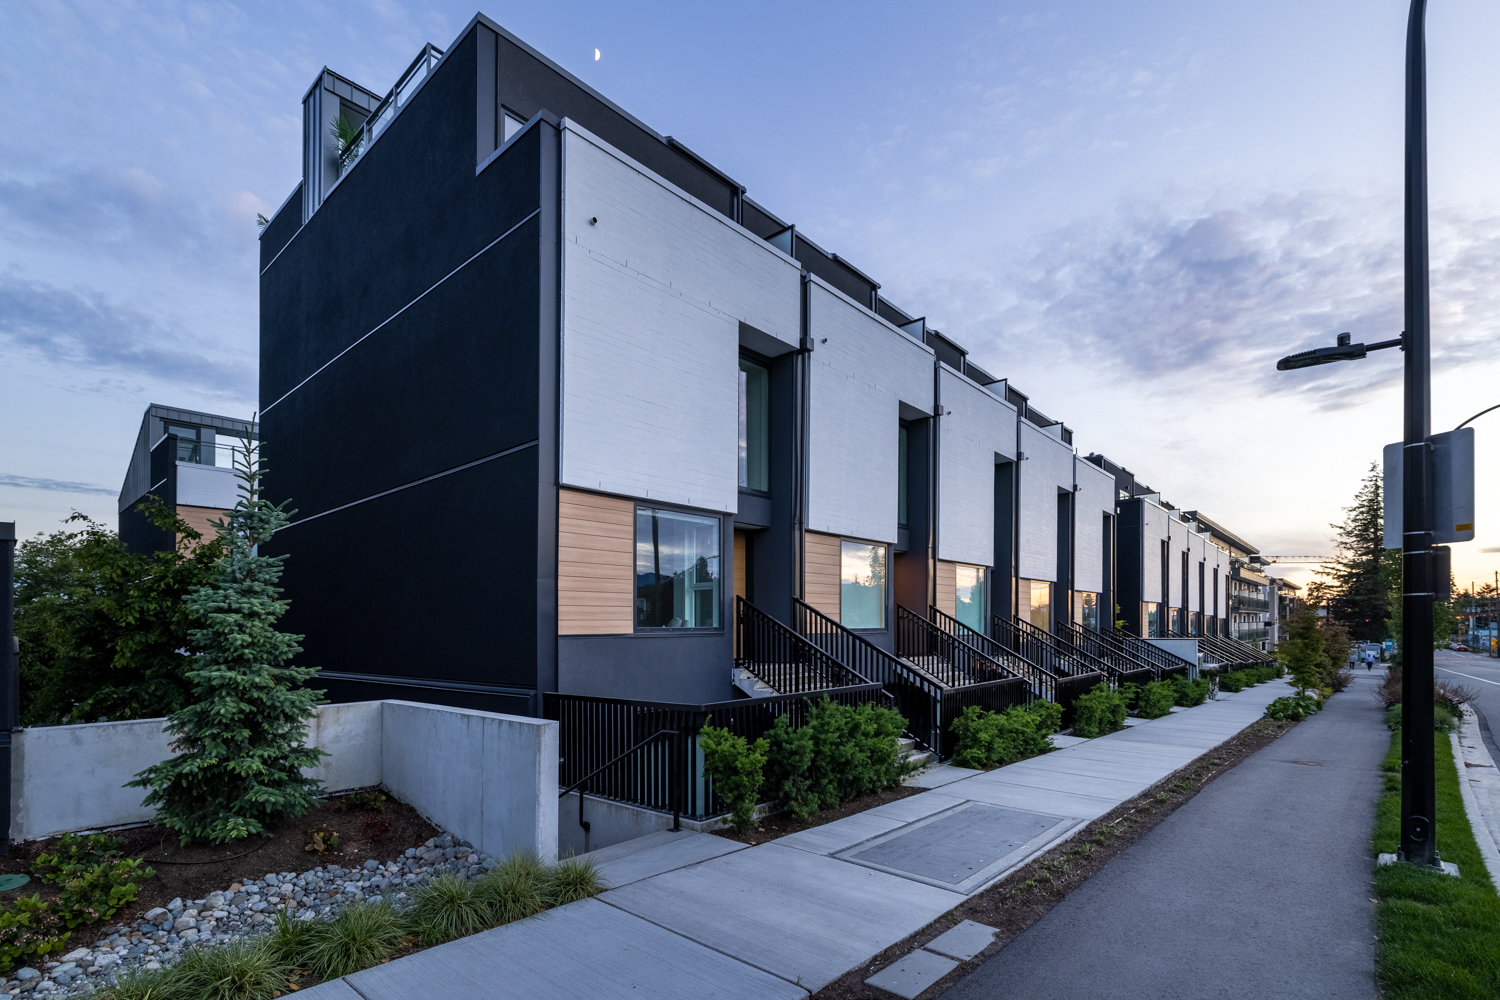 40 thoughtfully designed modern townhouses and garden suites, each with own front door Dististince London-Inspired West Coast Modern Design by Shape Architecture, accented with white brick, grey metal detailing and cedar finishes